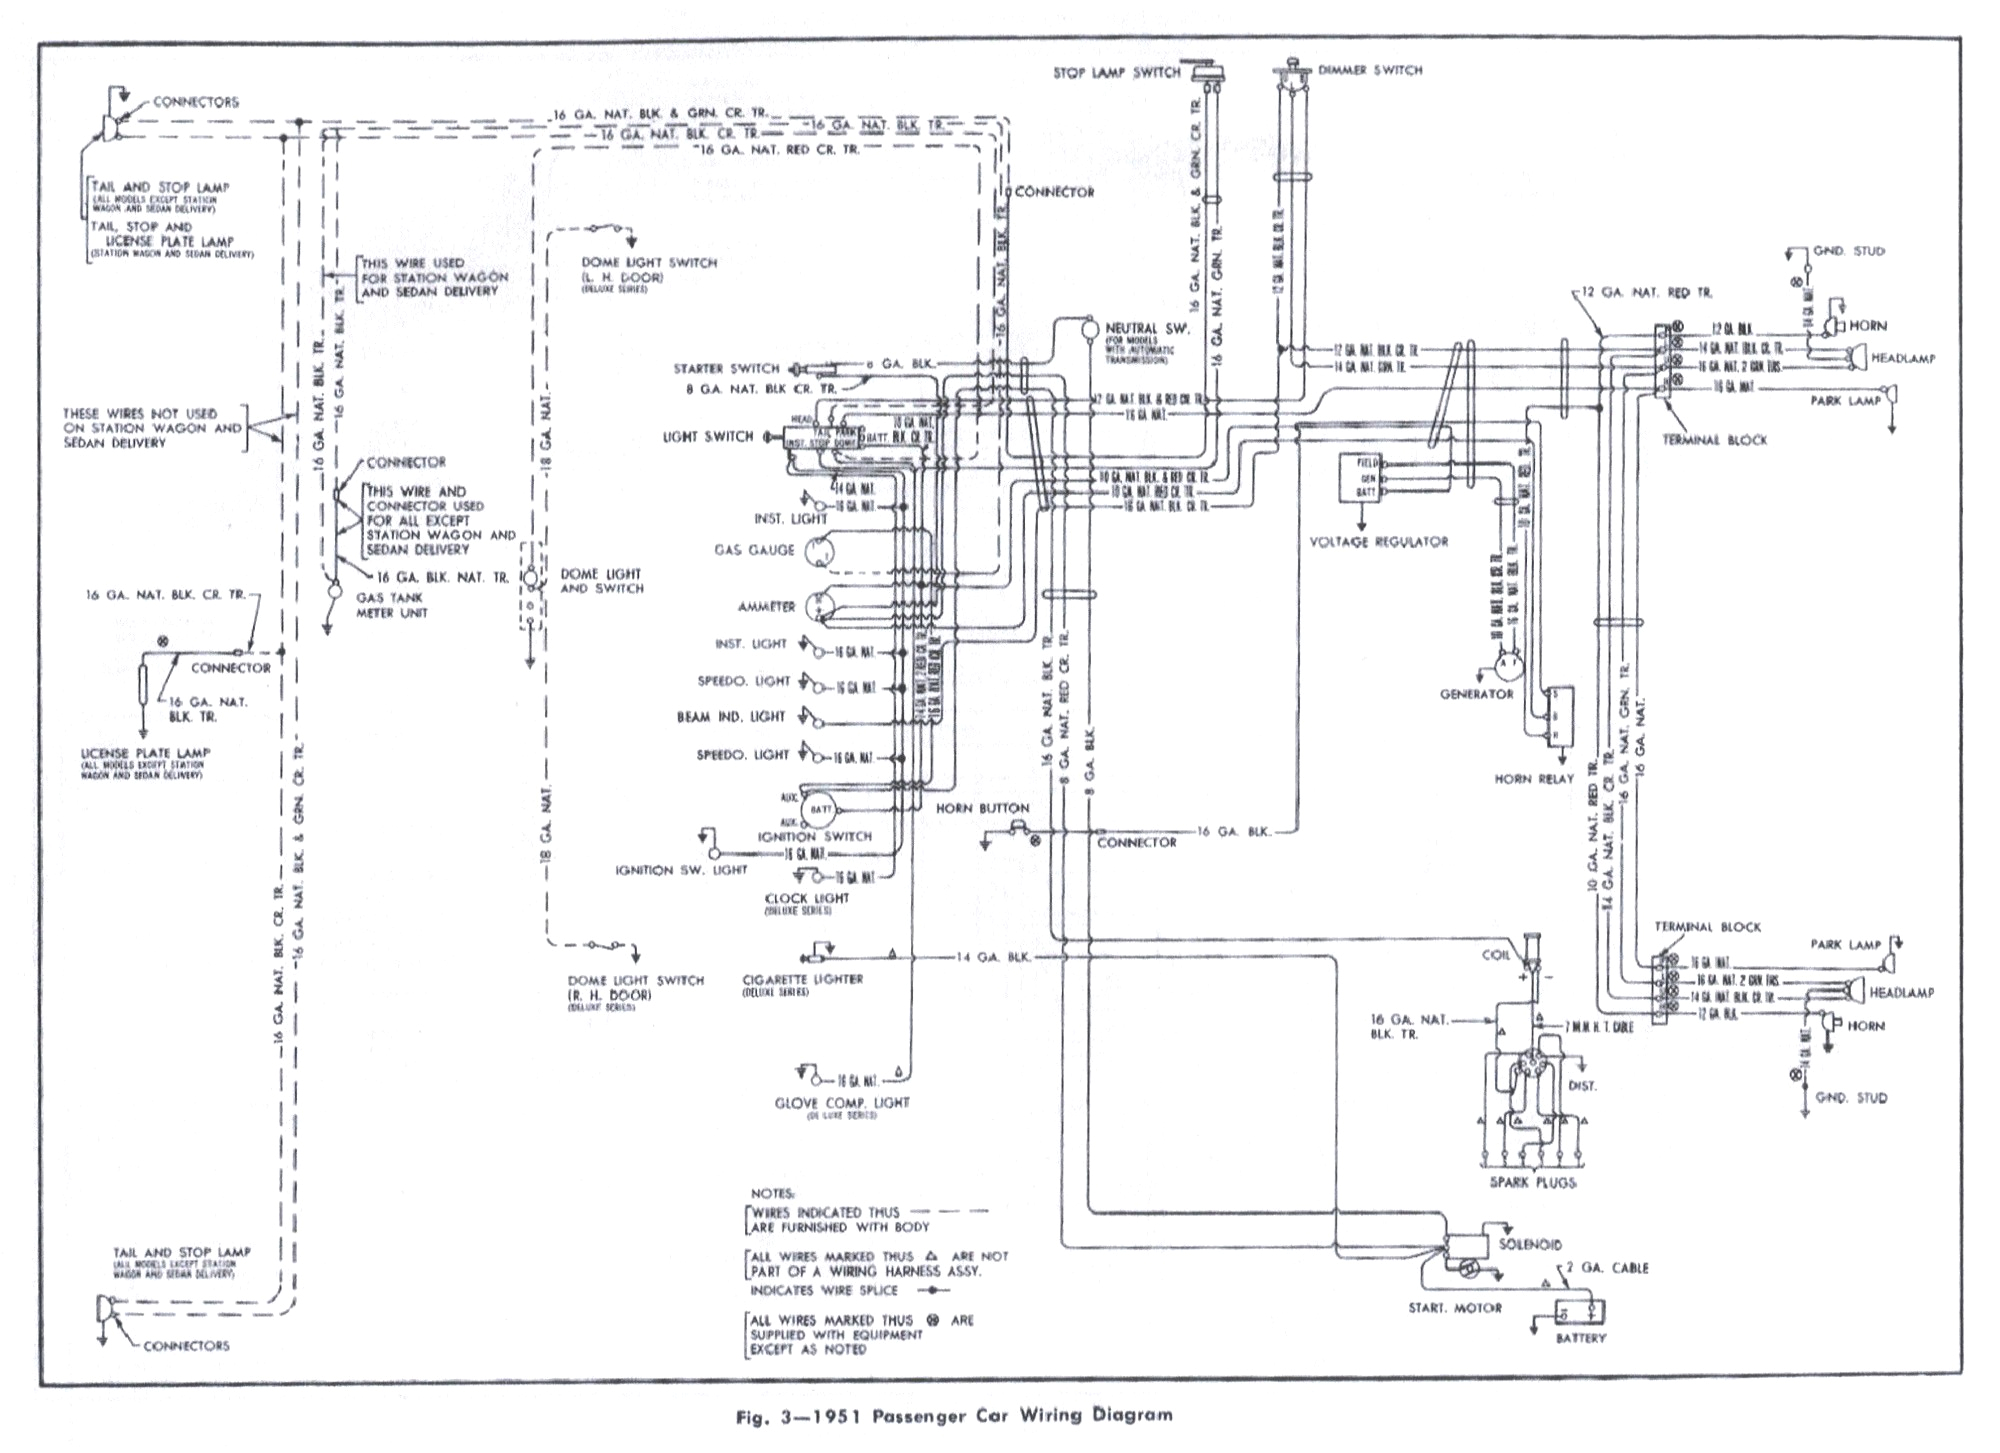 1954 chevy 210 wiring diagram wiring diagram basic manual tuning radio circuit diagram for the 1954 chevrolet truck